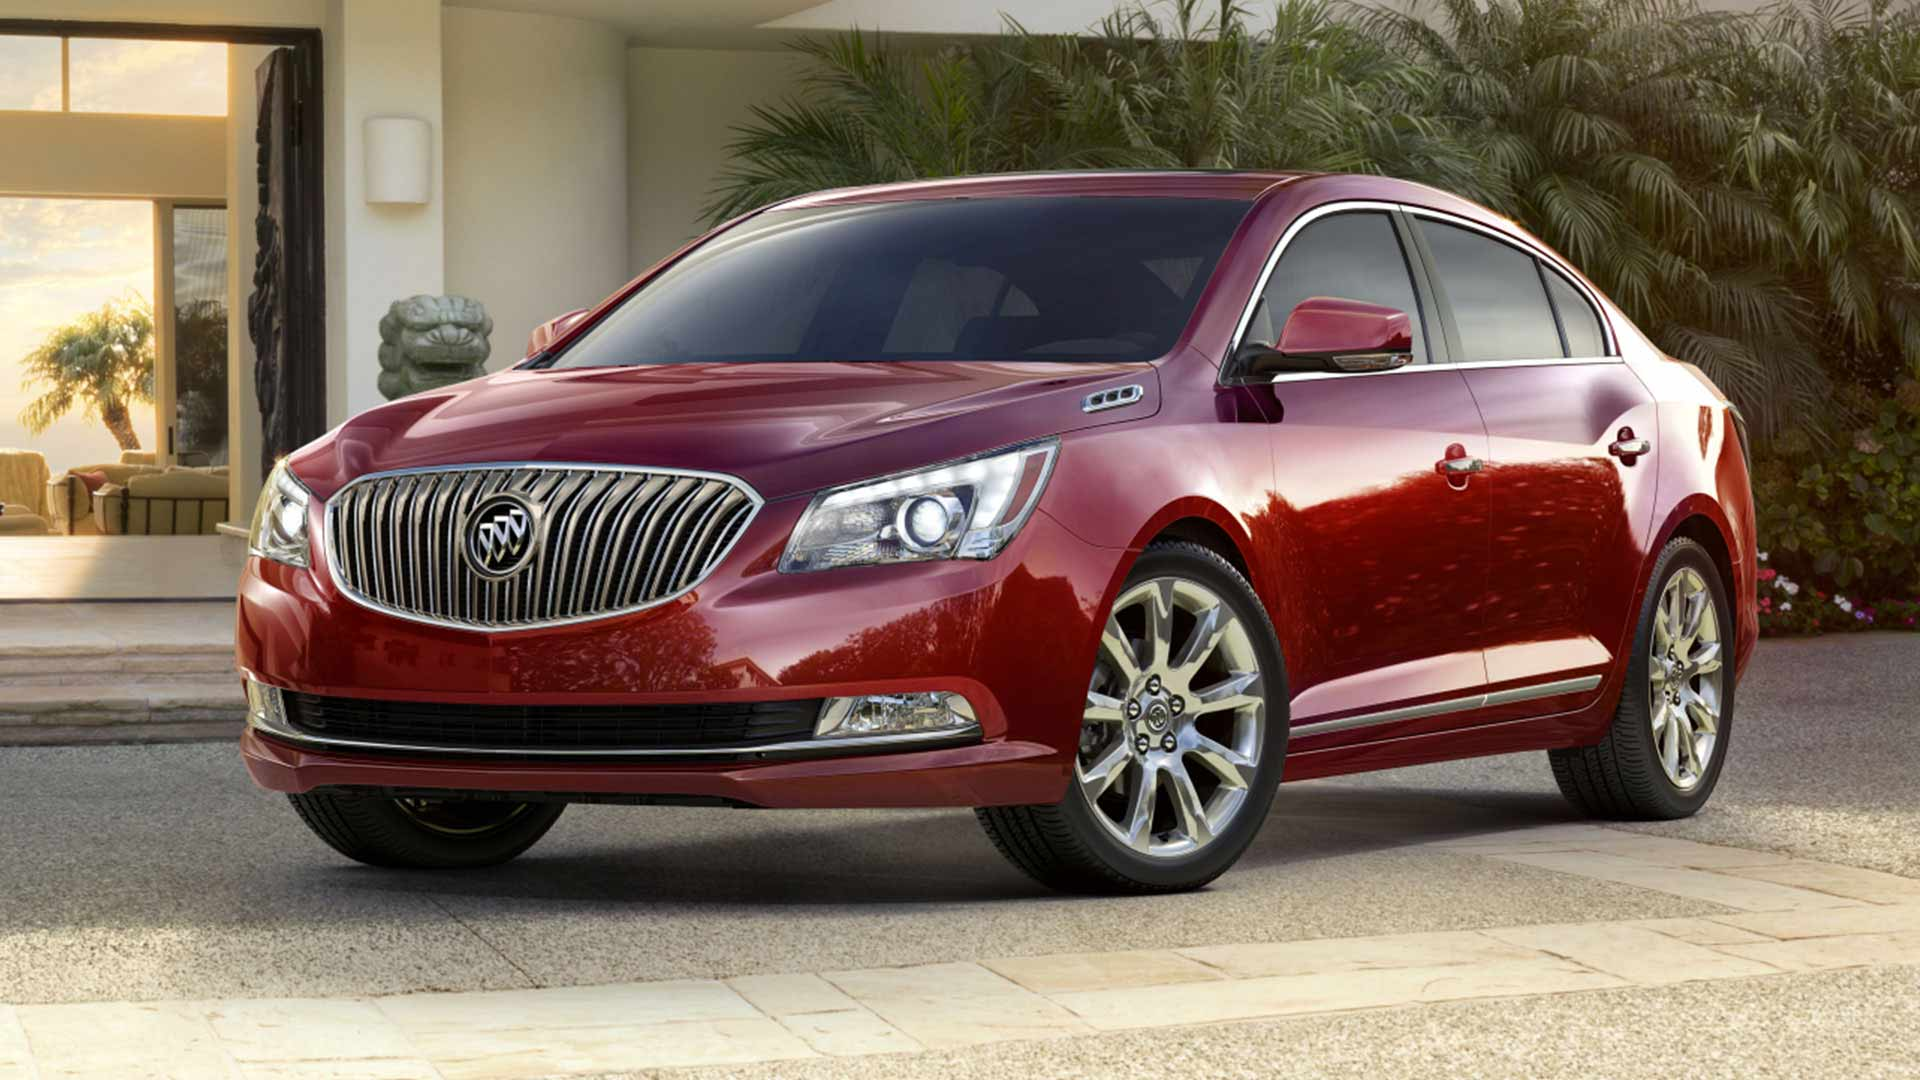 buick prices 2014 lacrosse details available options and packages the news wheel. Black Bedroom Furniture Sets. Home Design Ideas